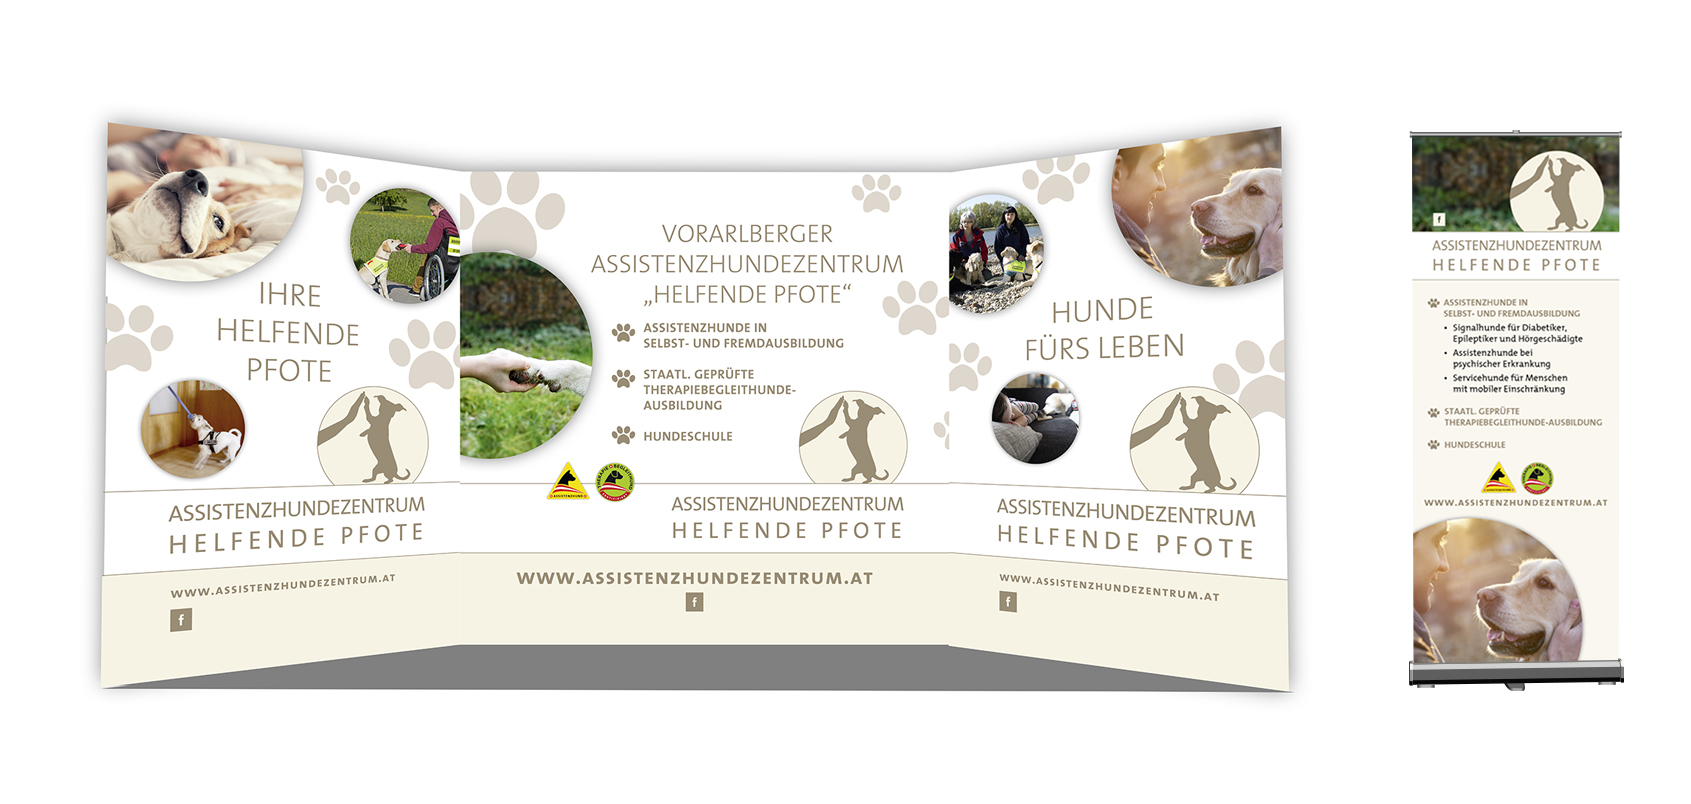 Messestand, fair stand, inspiration design, assistenzhunde, hund 2015, coole messestände